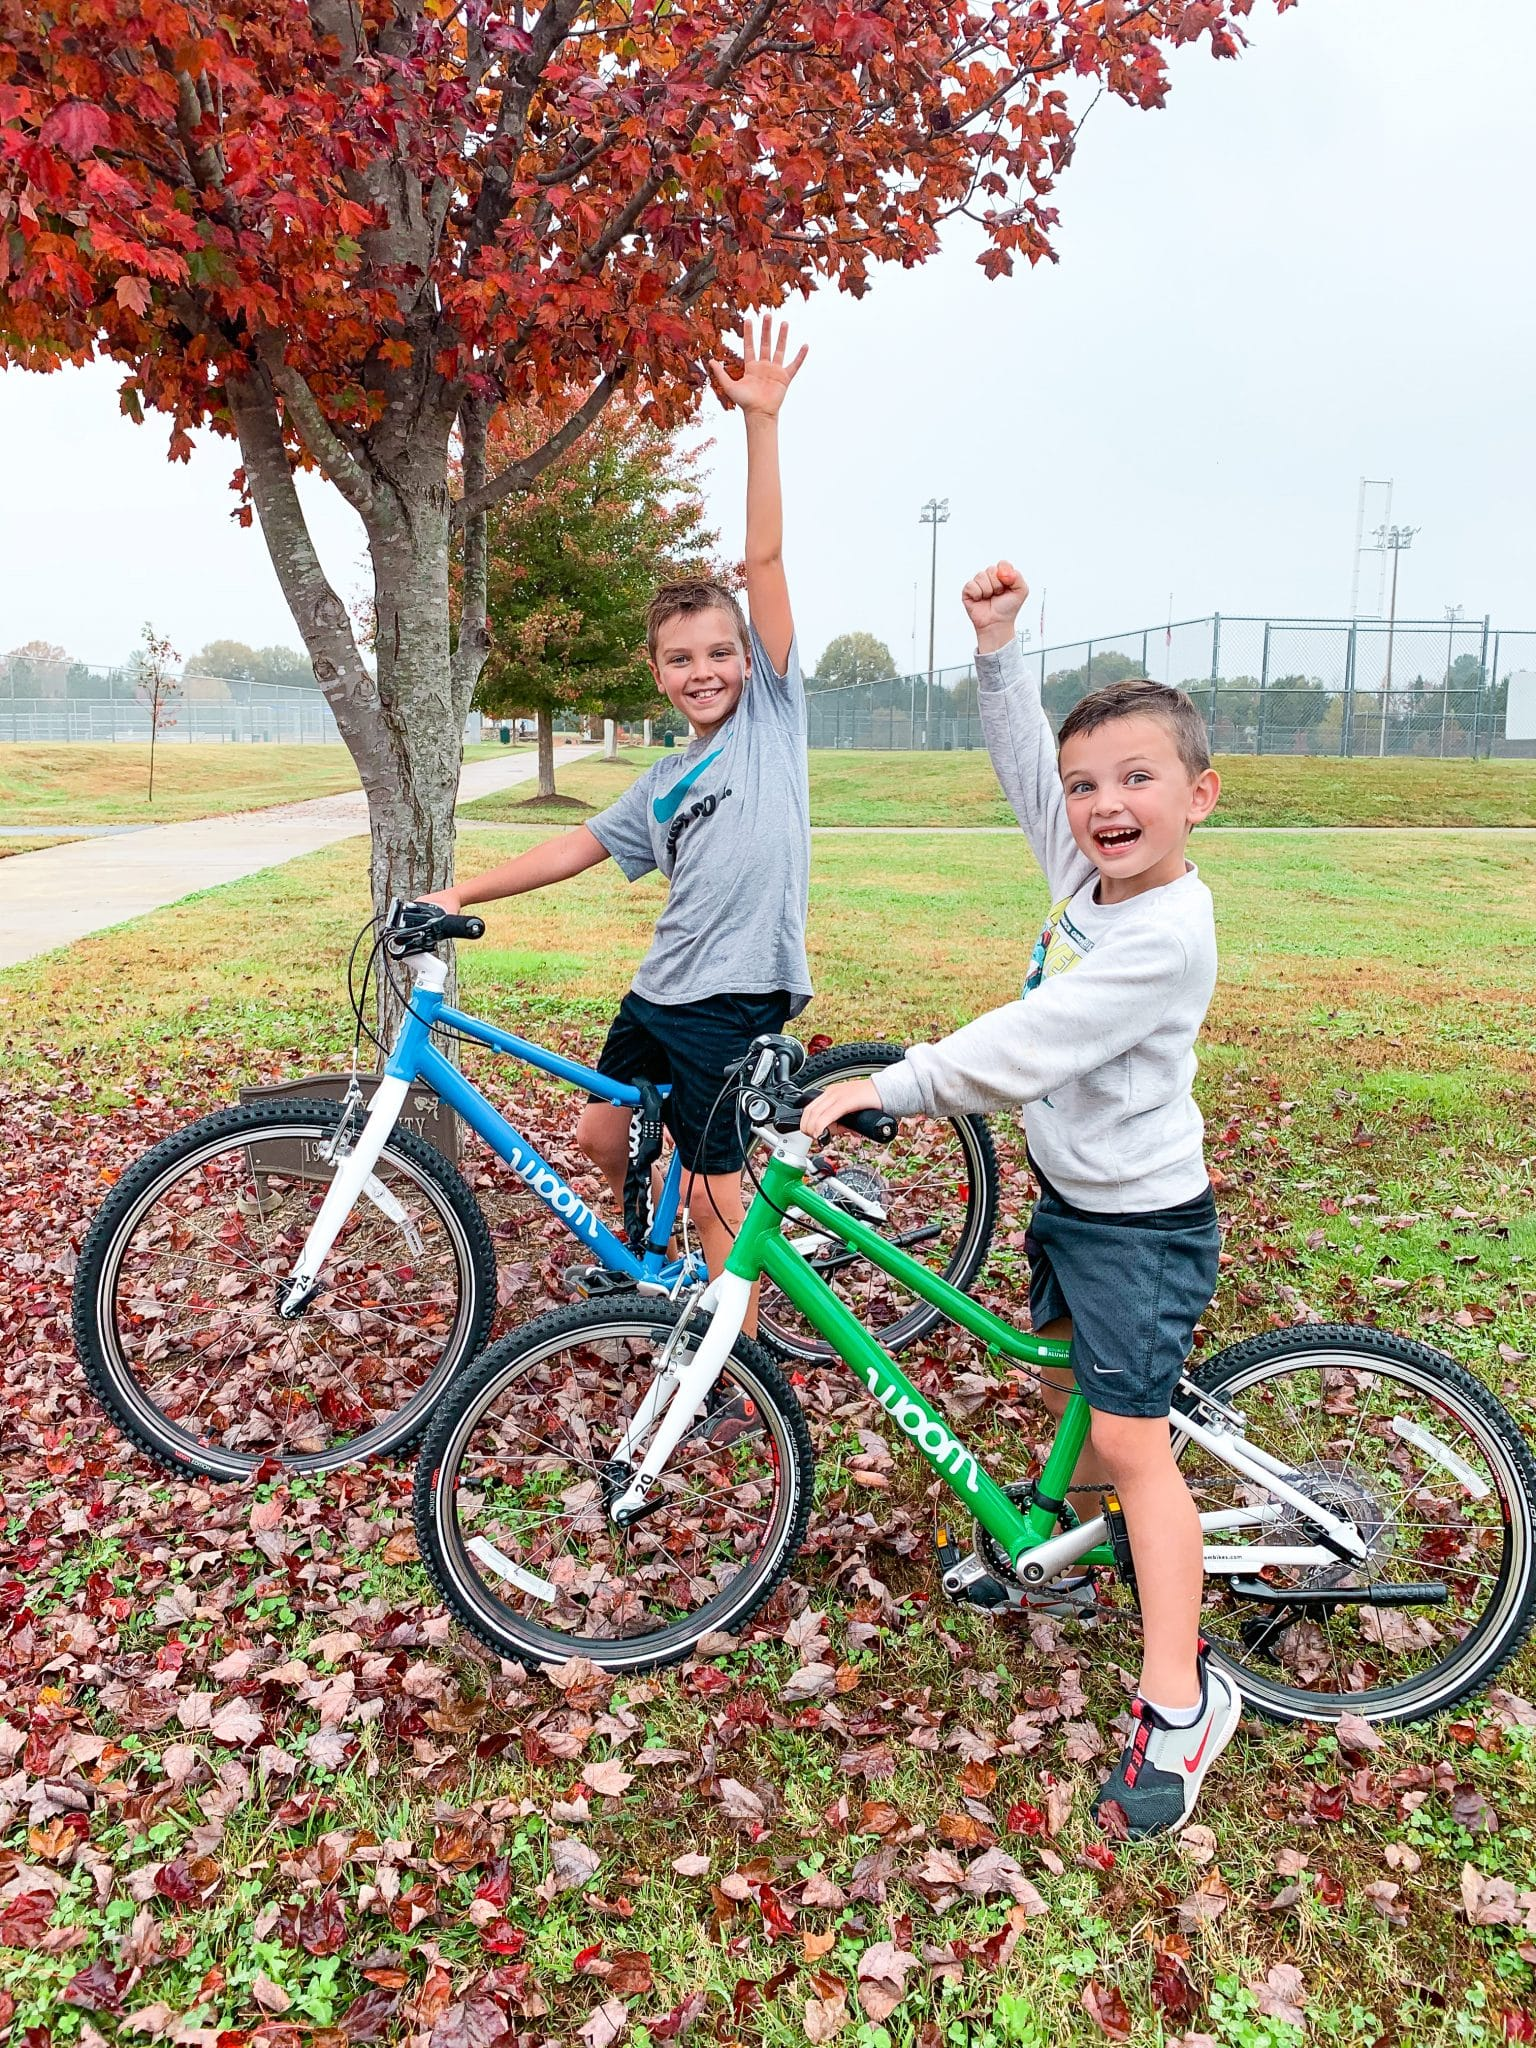 Woom Bike, Lightweight bikes for kids, learning to ride a bike, Stilettos and Diapers